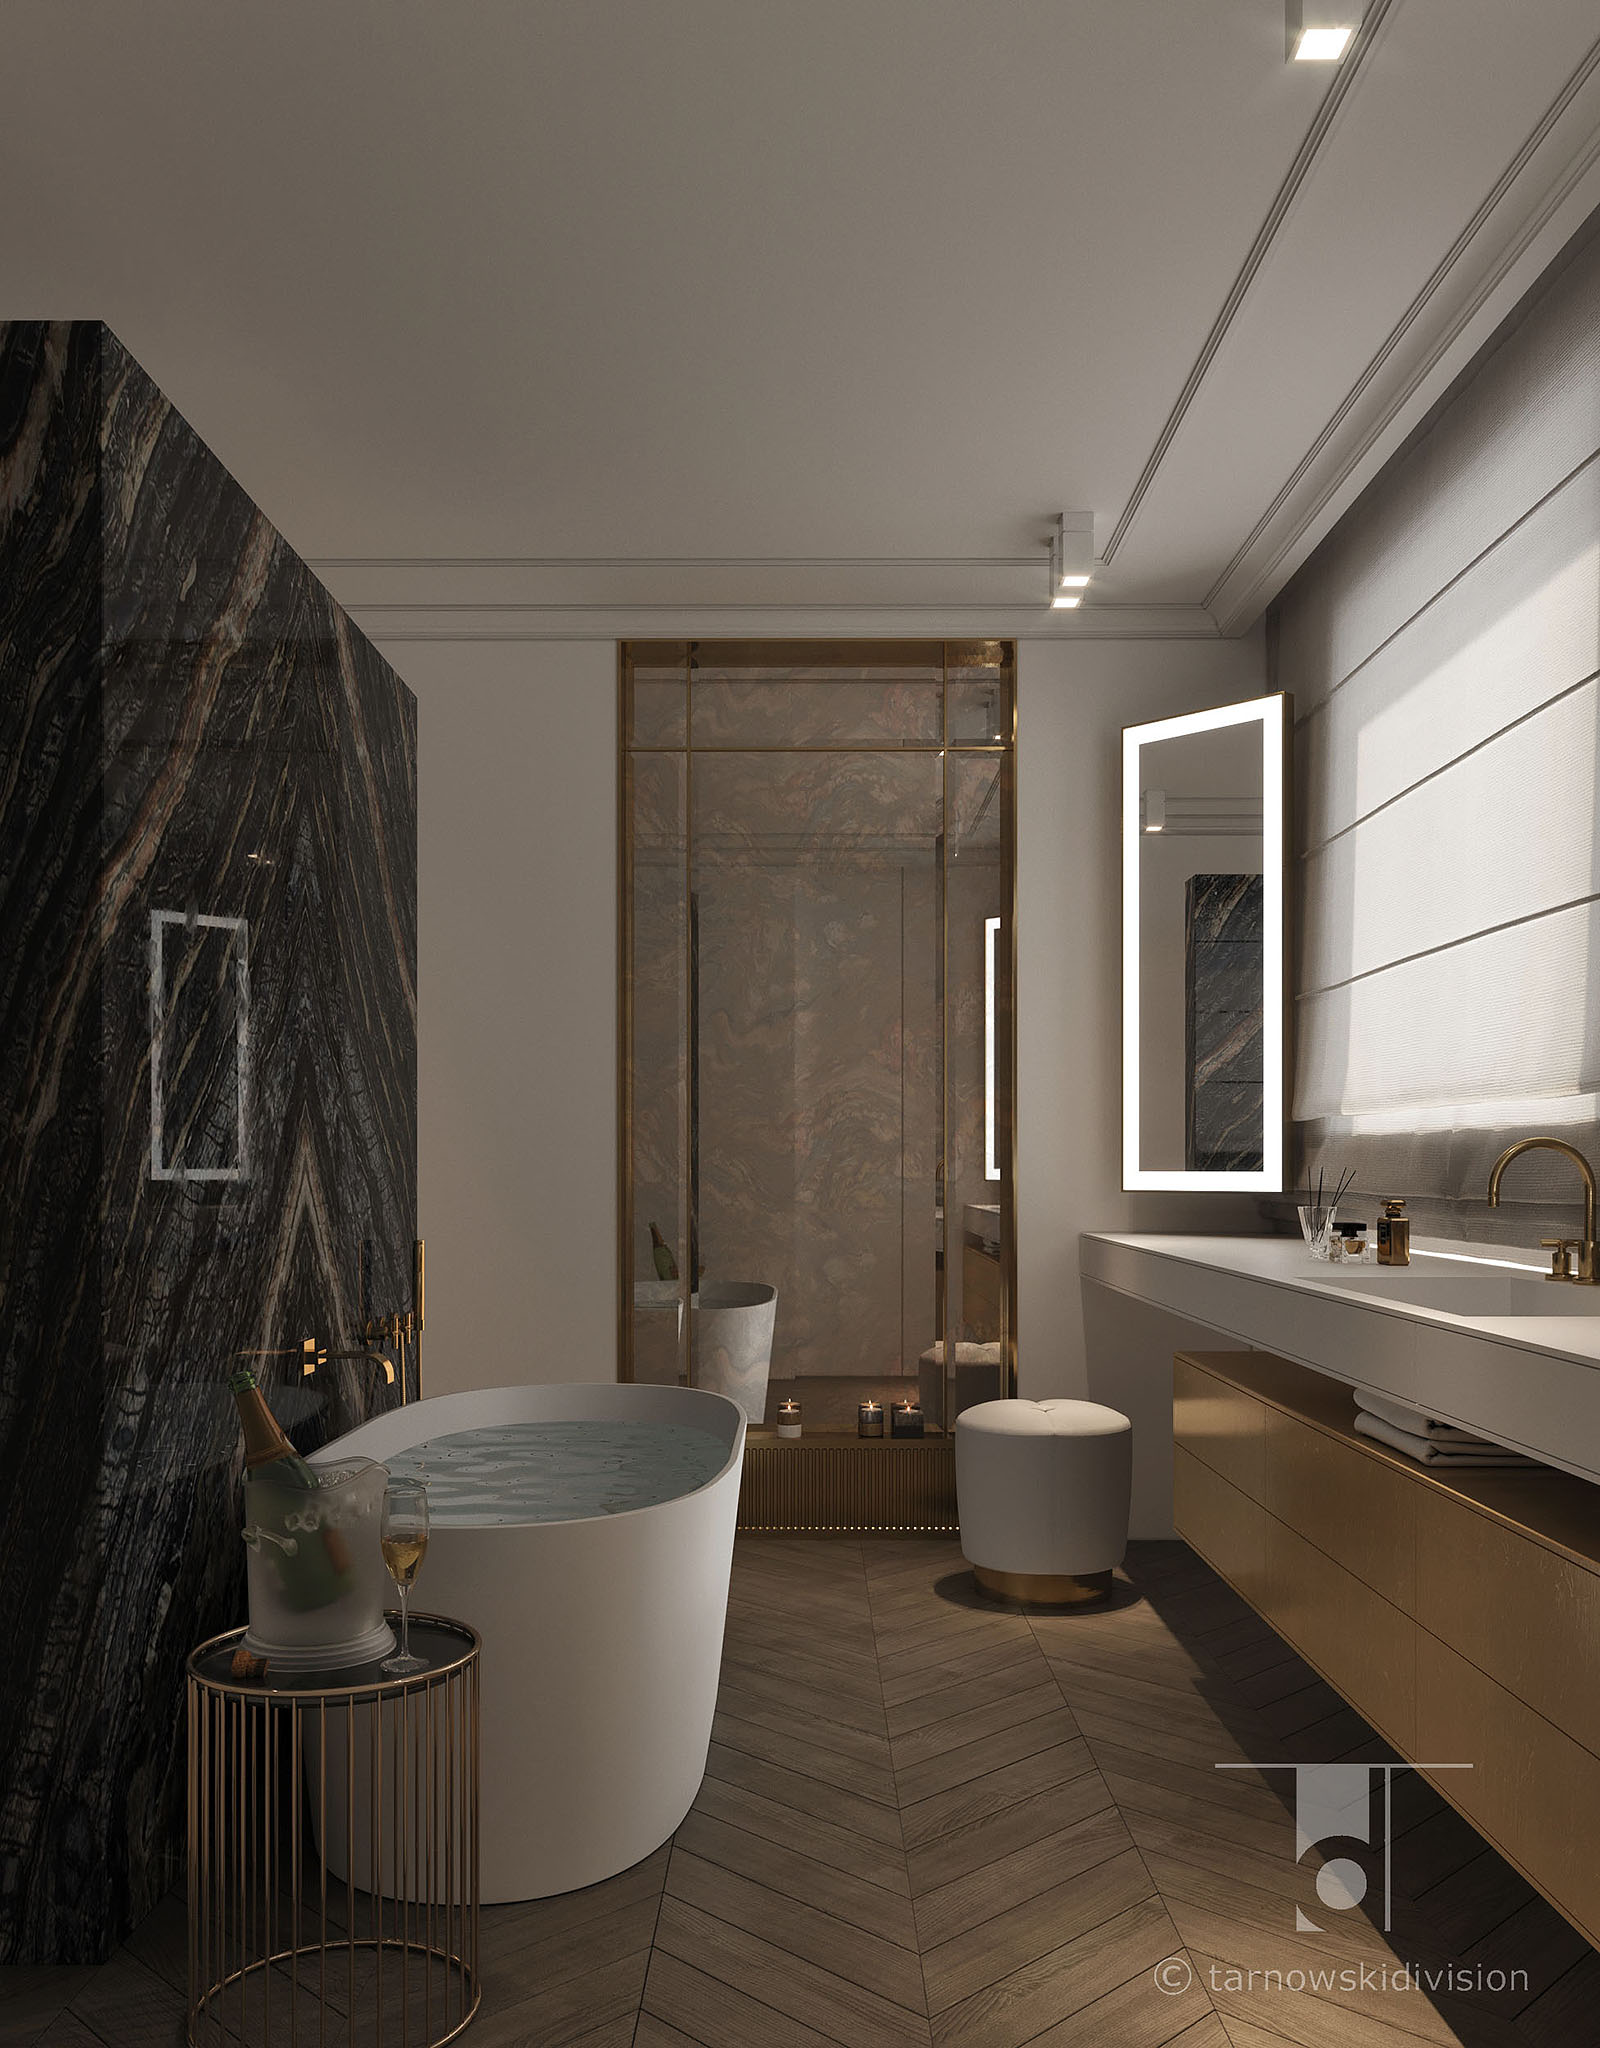 apartament_bathroom_interior design_tarnowski division